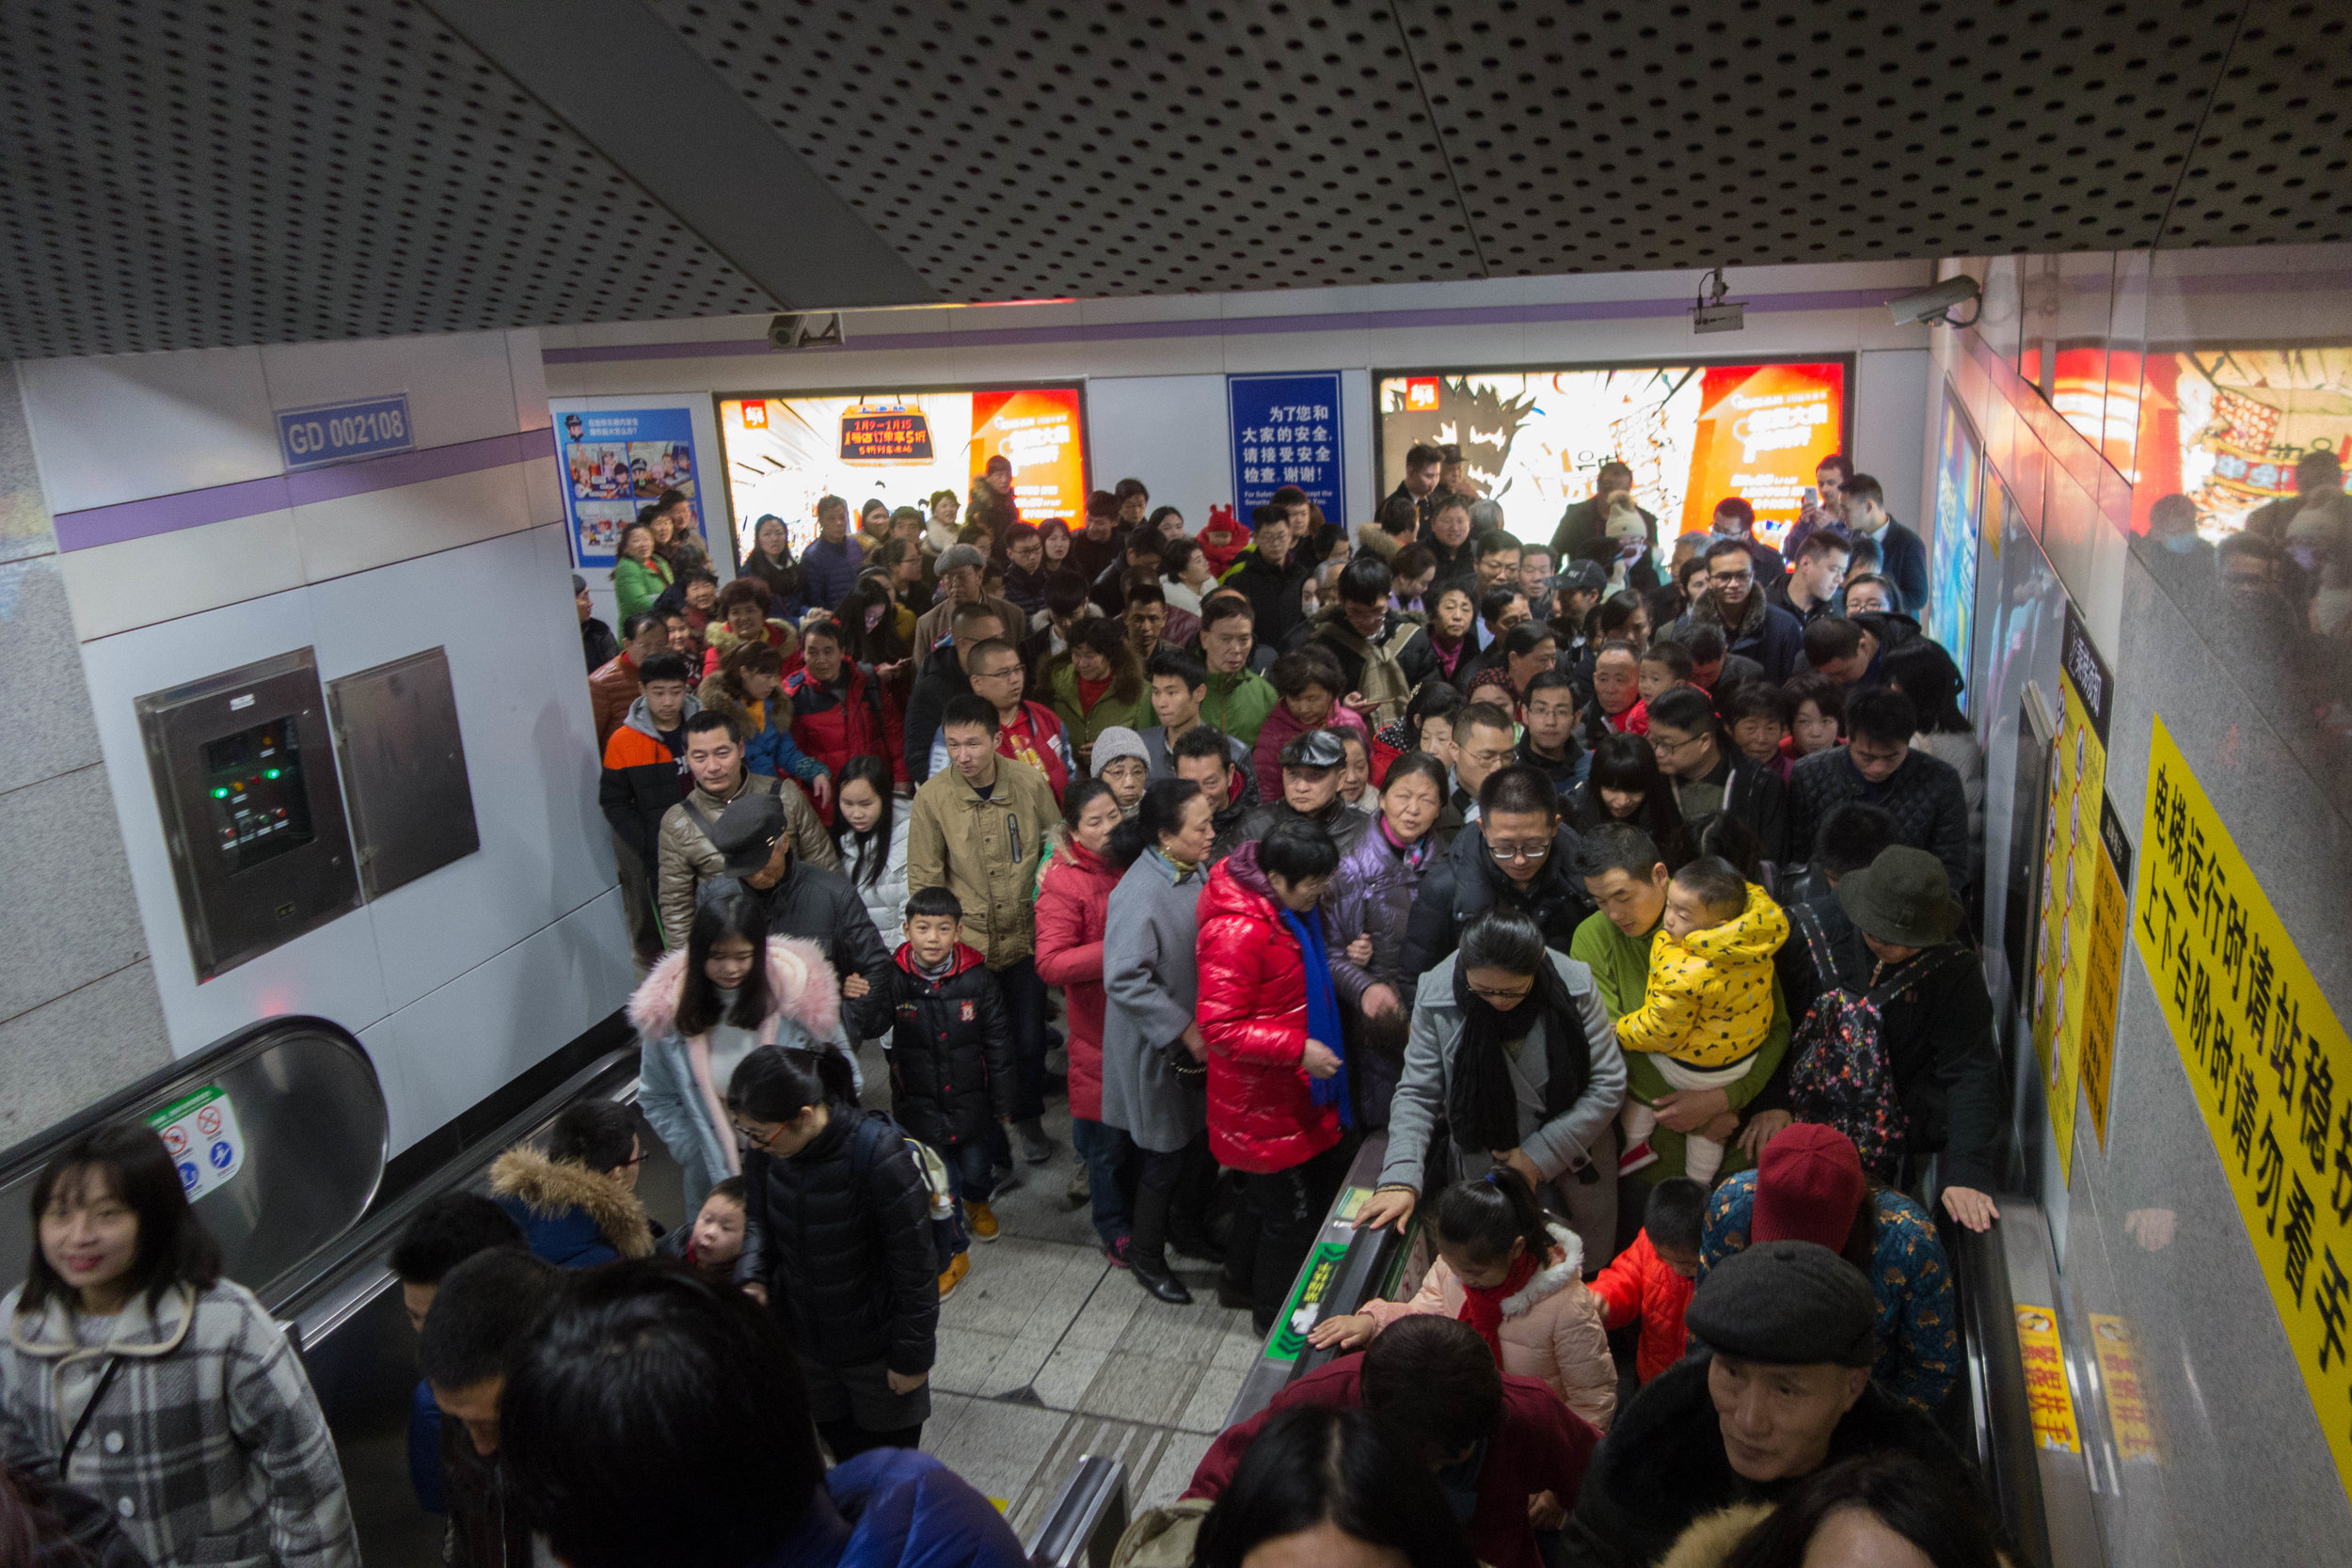 Inside a subway stop during the New Year holiday